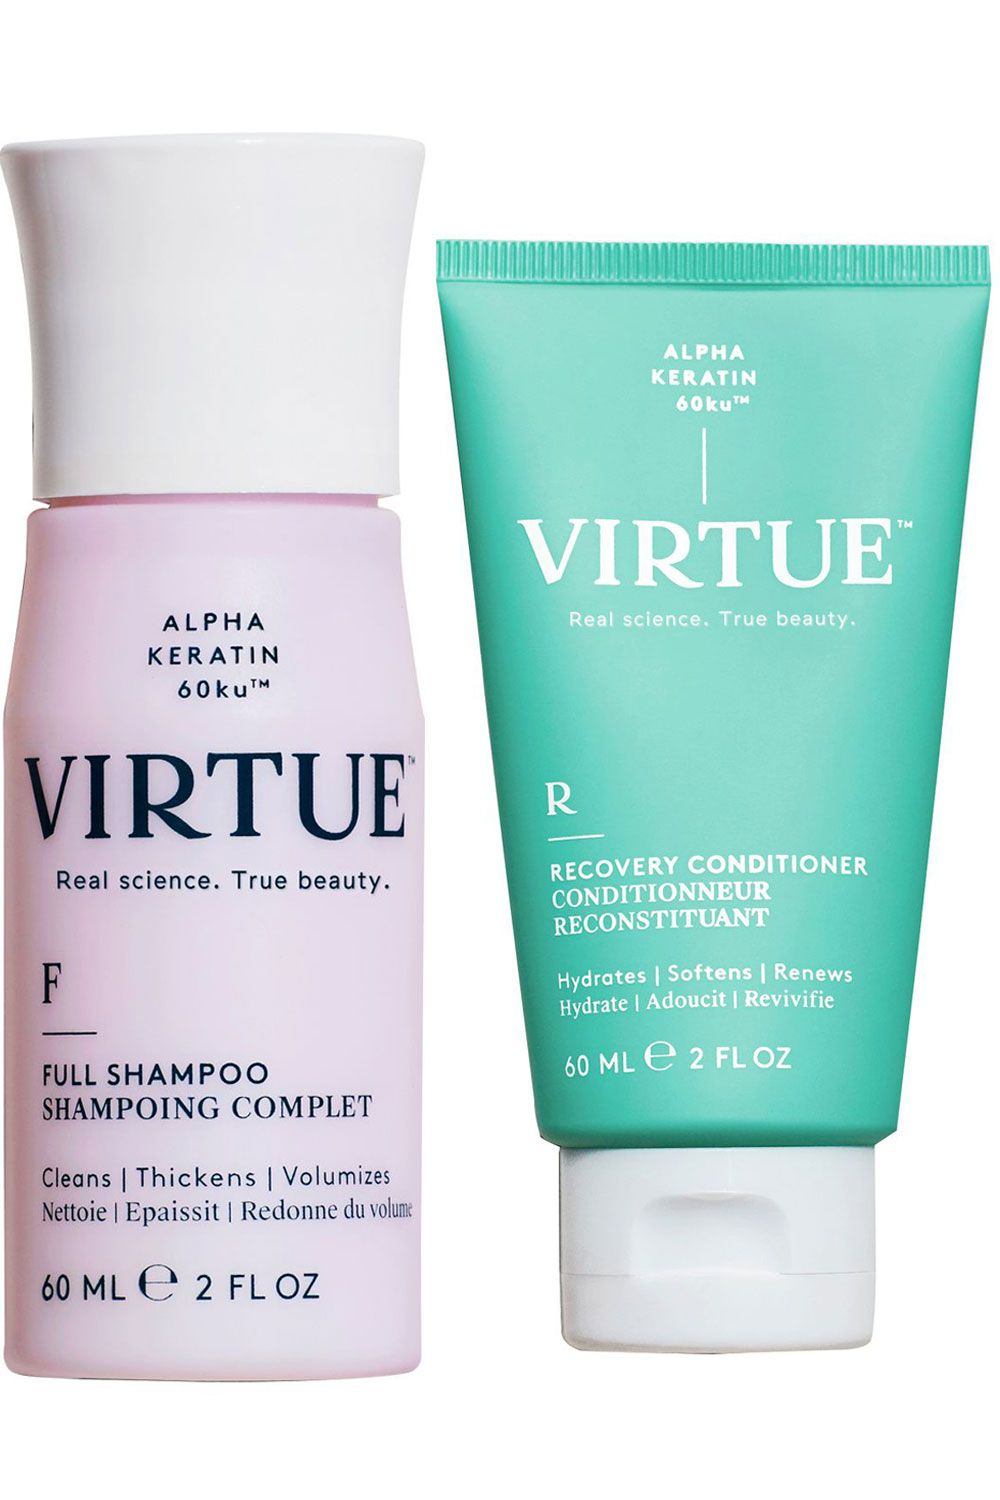 Virtue shampoo and conditioner review